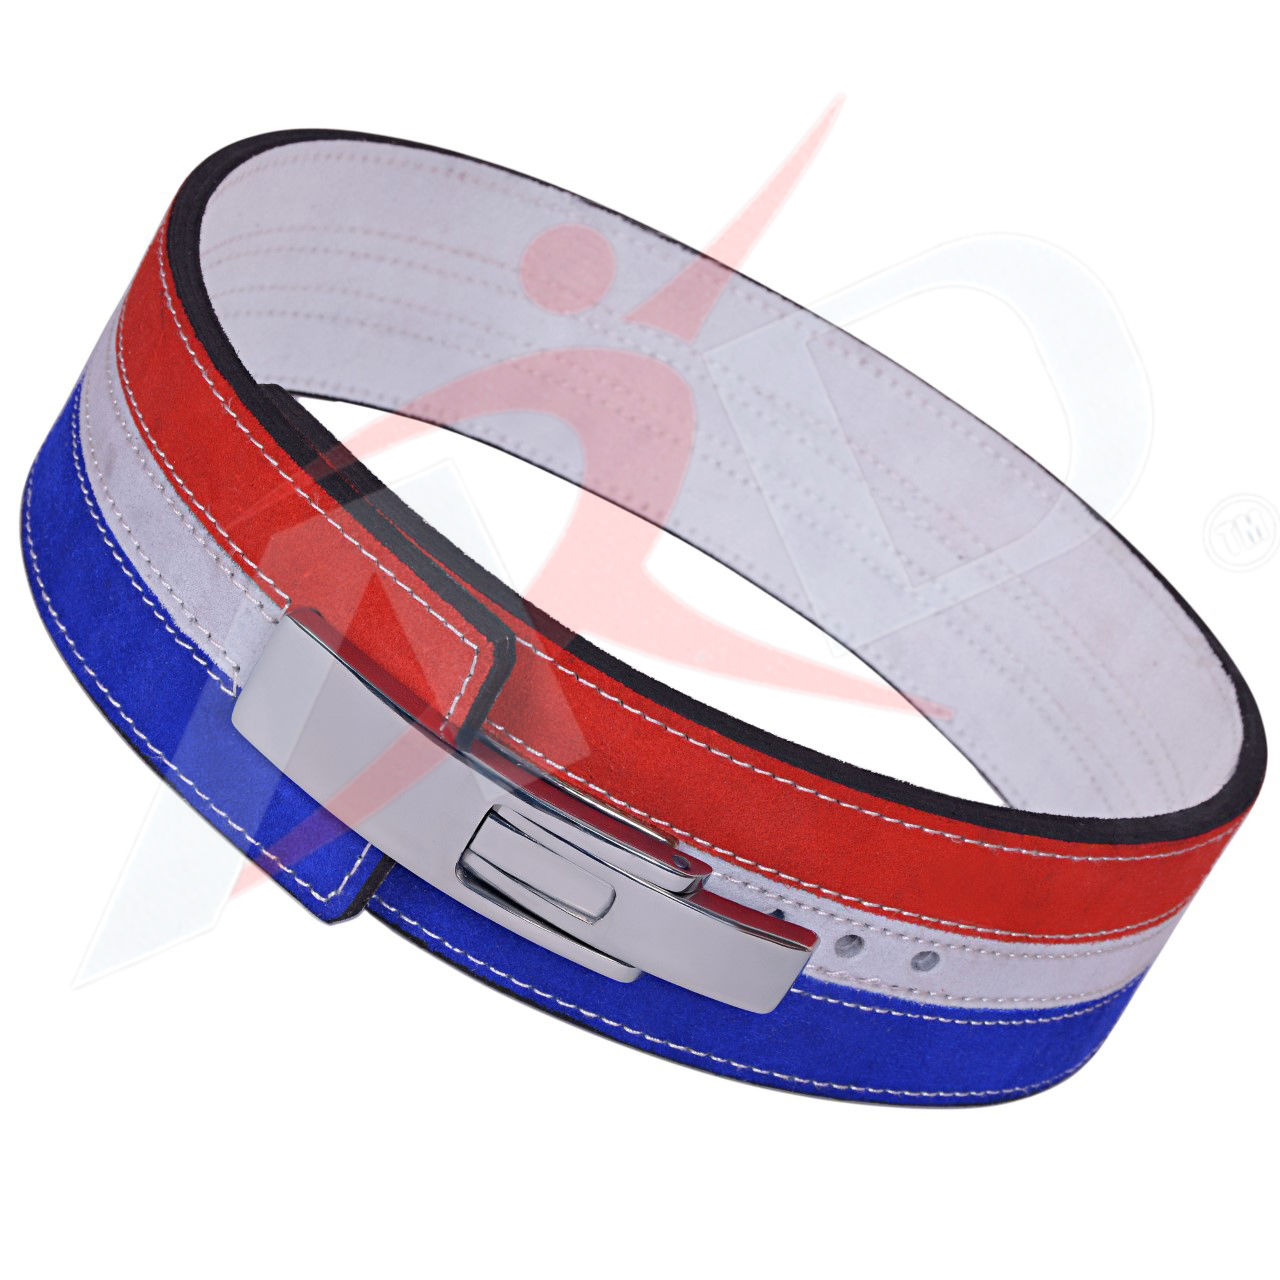 ARD CHAMPS Weight Power Lifting Leather Lever Pro Belt Gym Training Red-White-Blue Xtra Small by